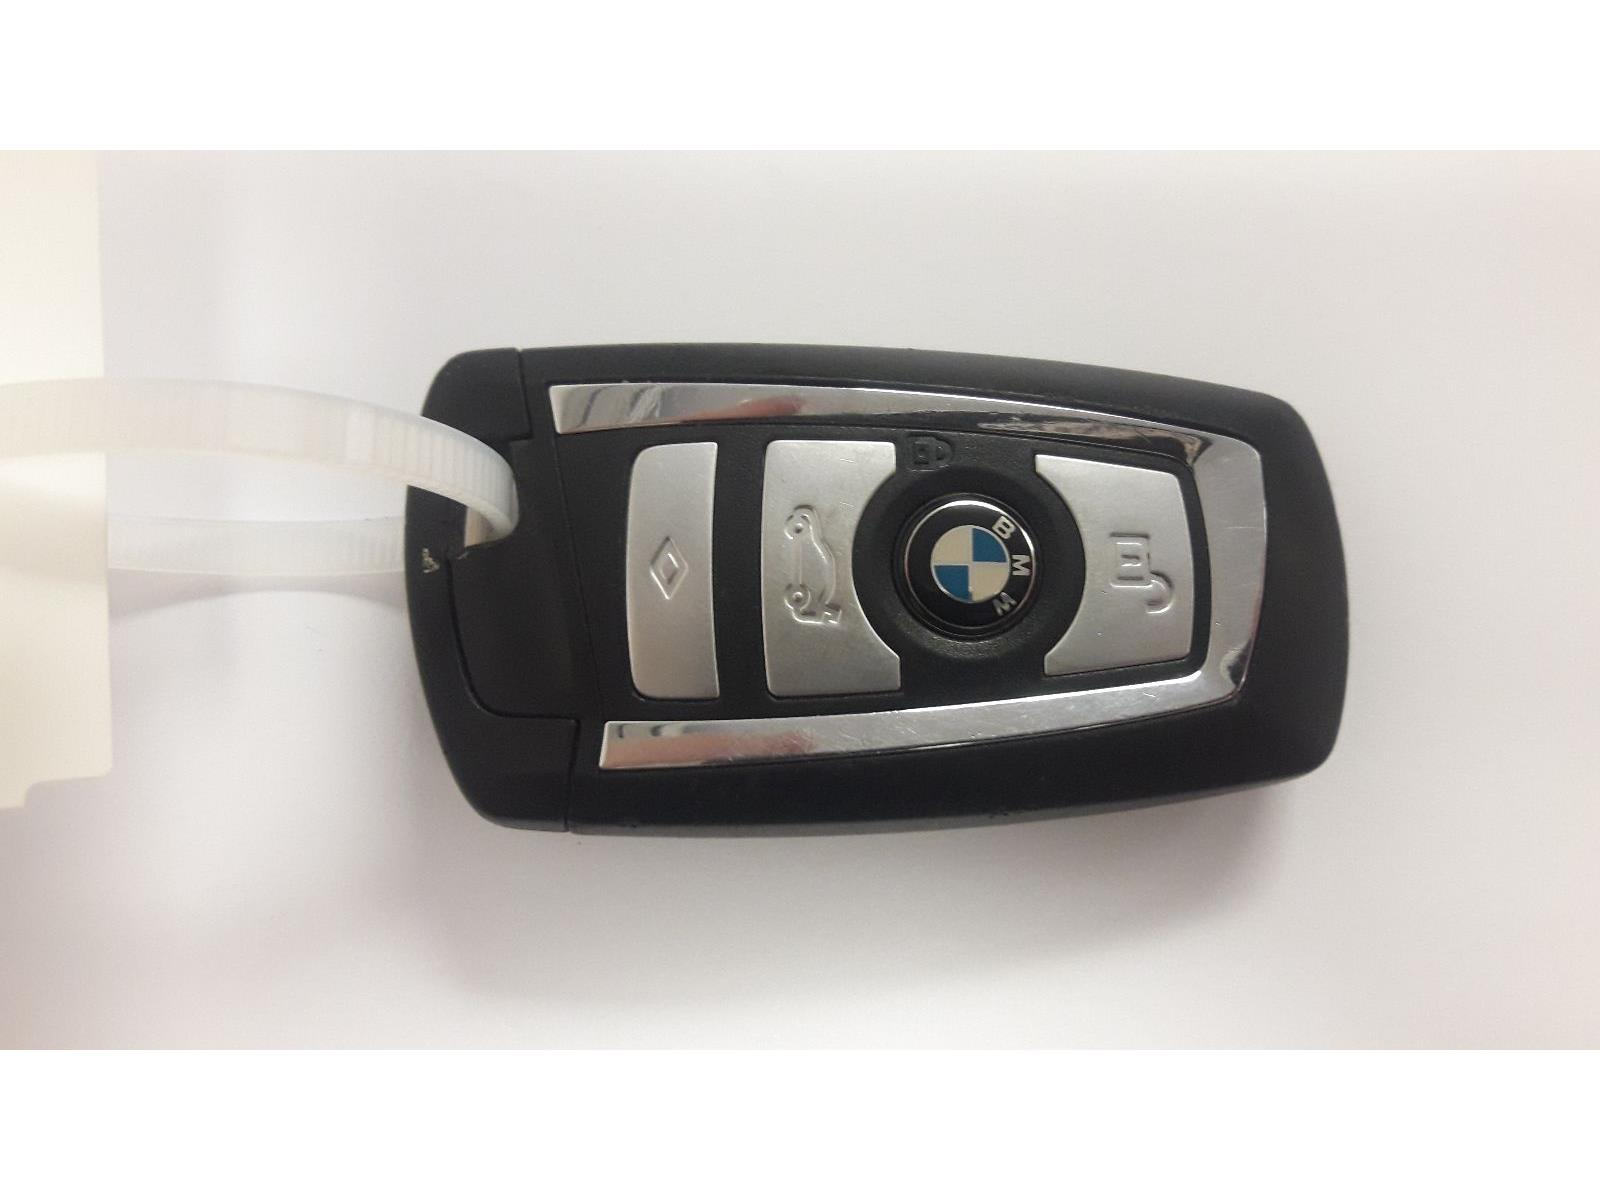 BMW 9284931 - 4 Button Chrome Trim F30 F31 868MHz